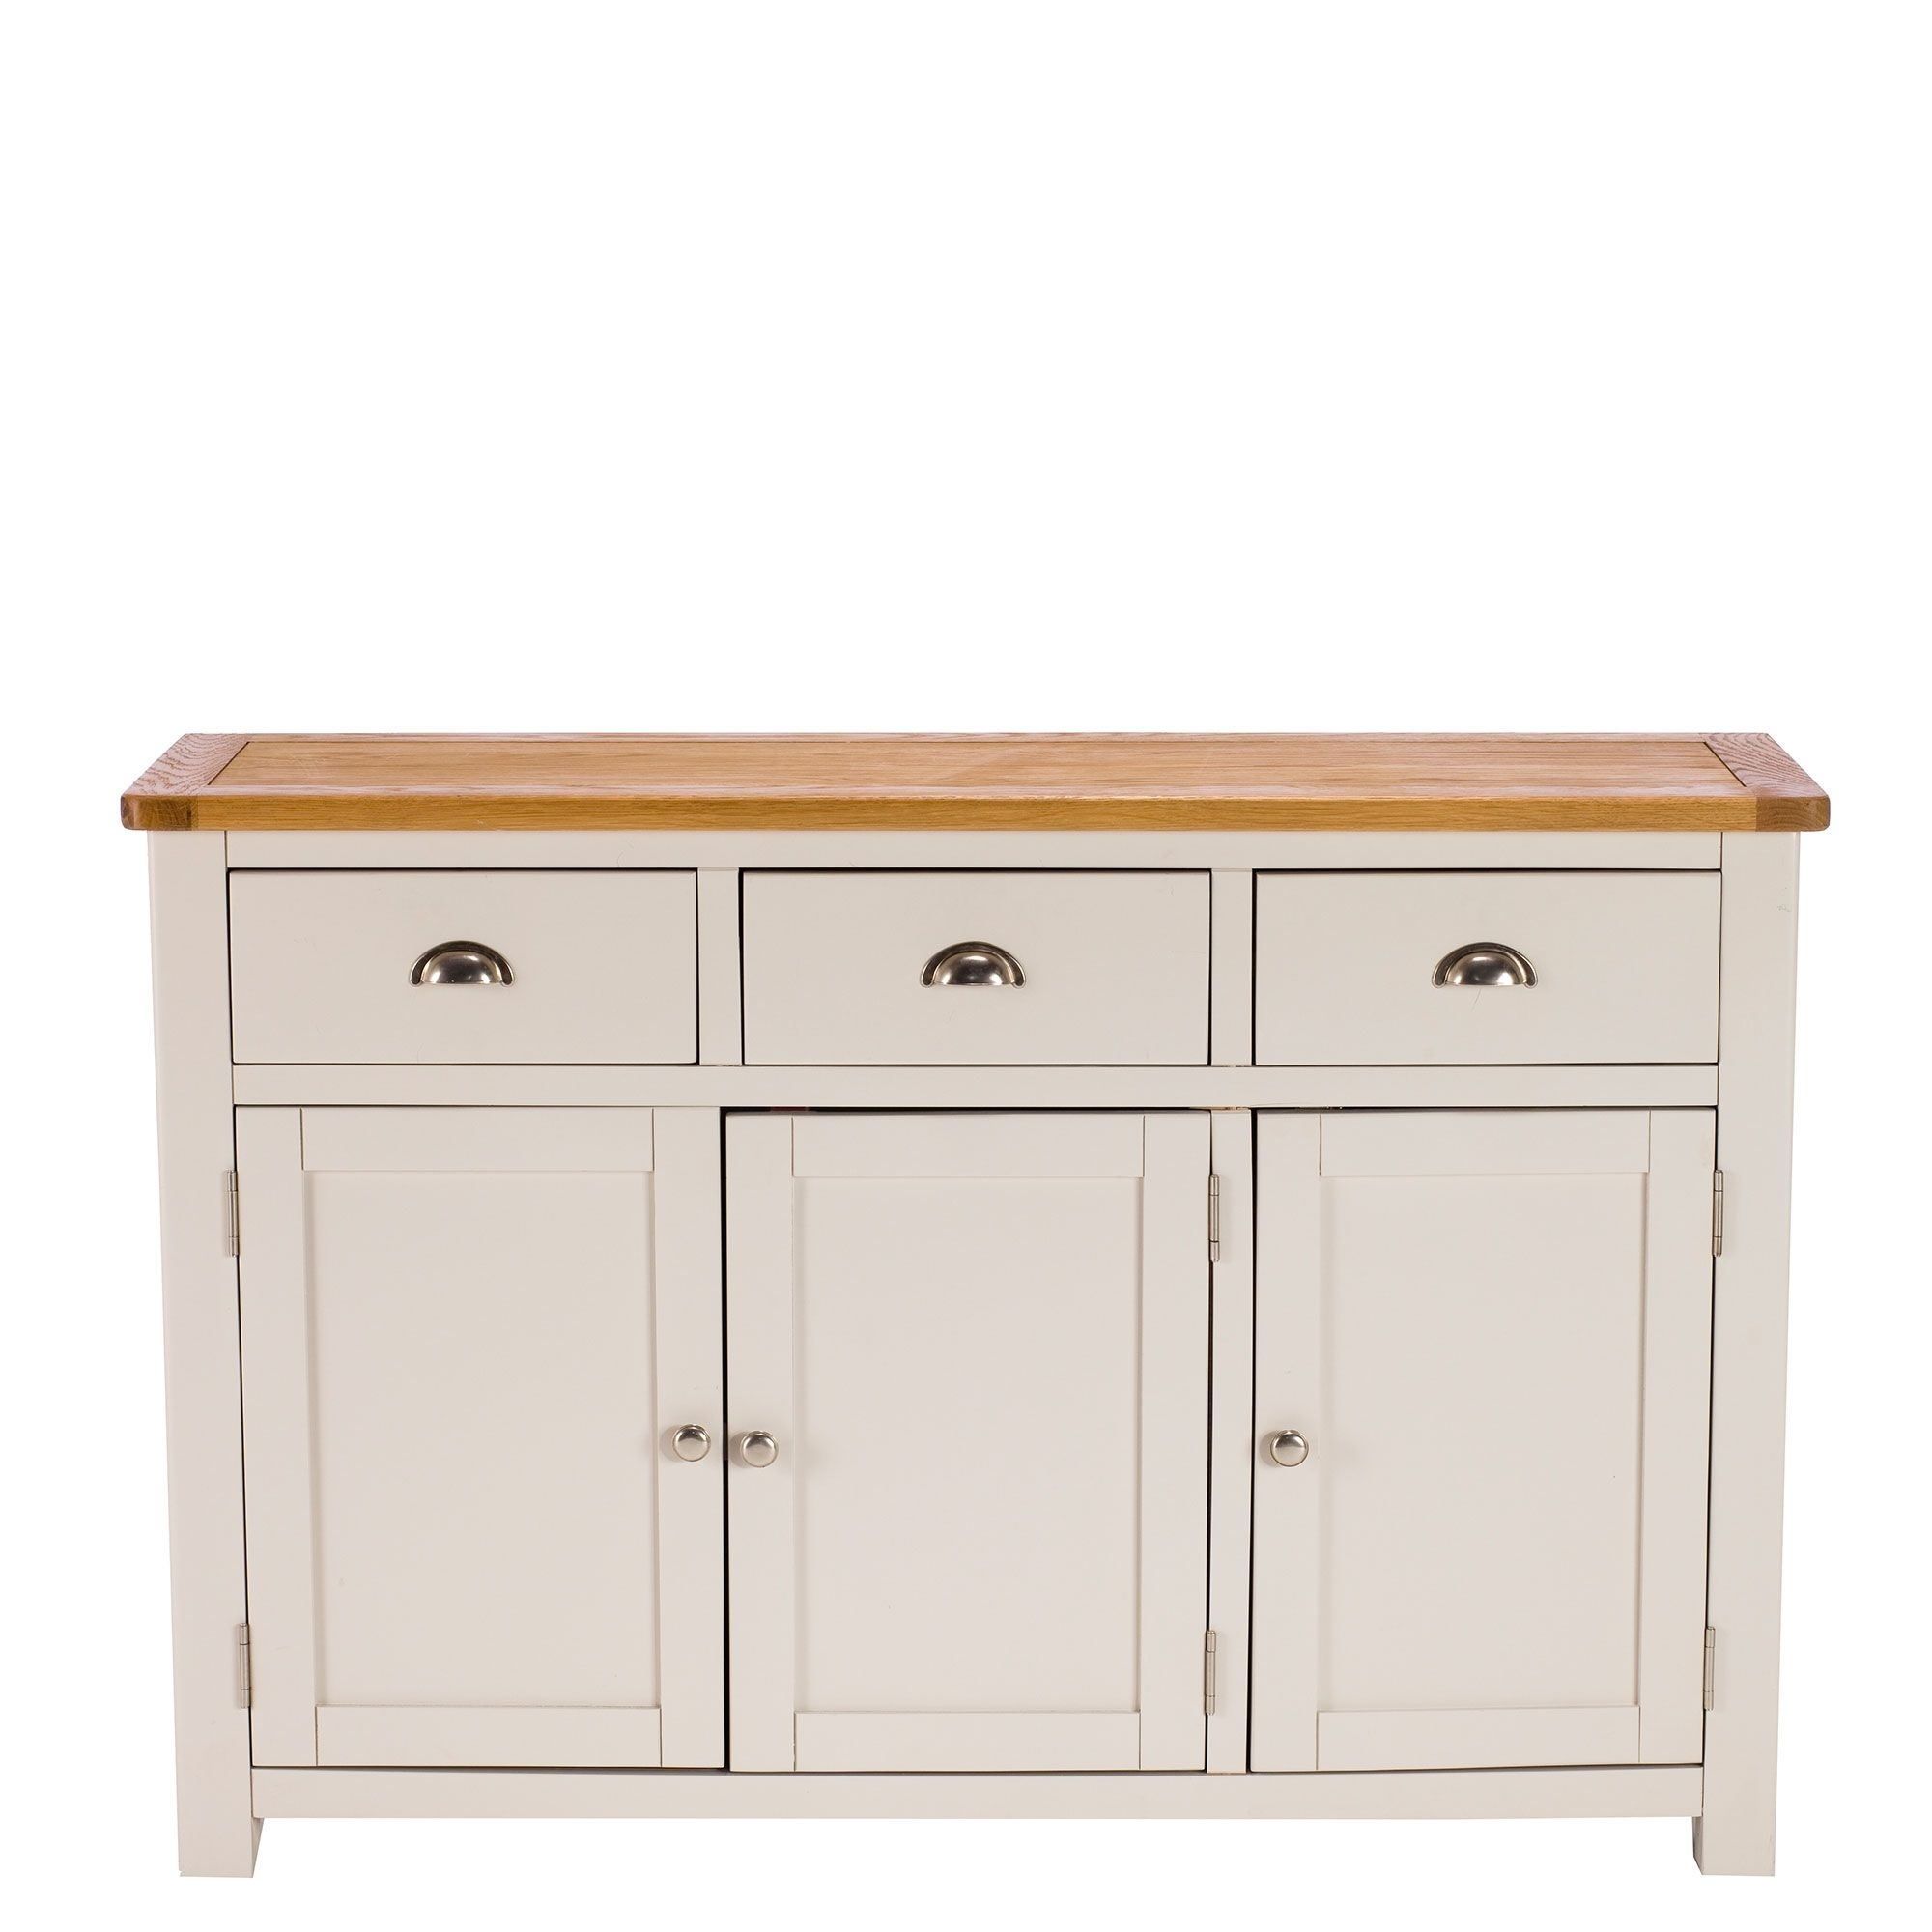 Eskdale 3 Door 3 Drawer Sideboard, Linen Available Online At Barker with Antique White Distressed 3-Drawer/2-Door Sideboards (Image 10 of 30)